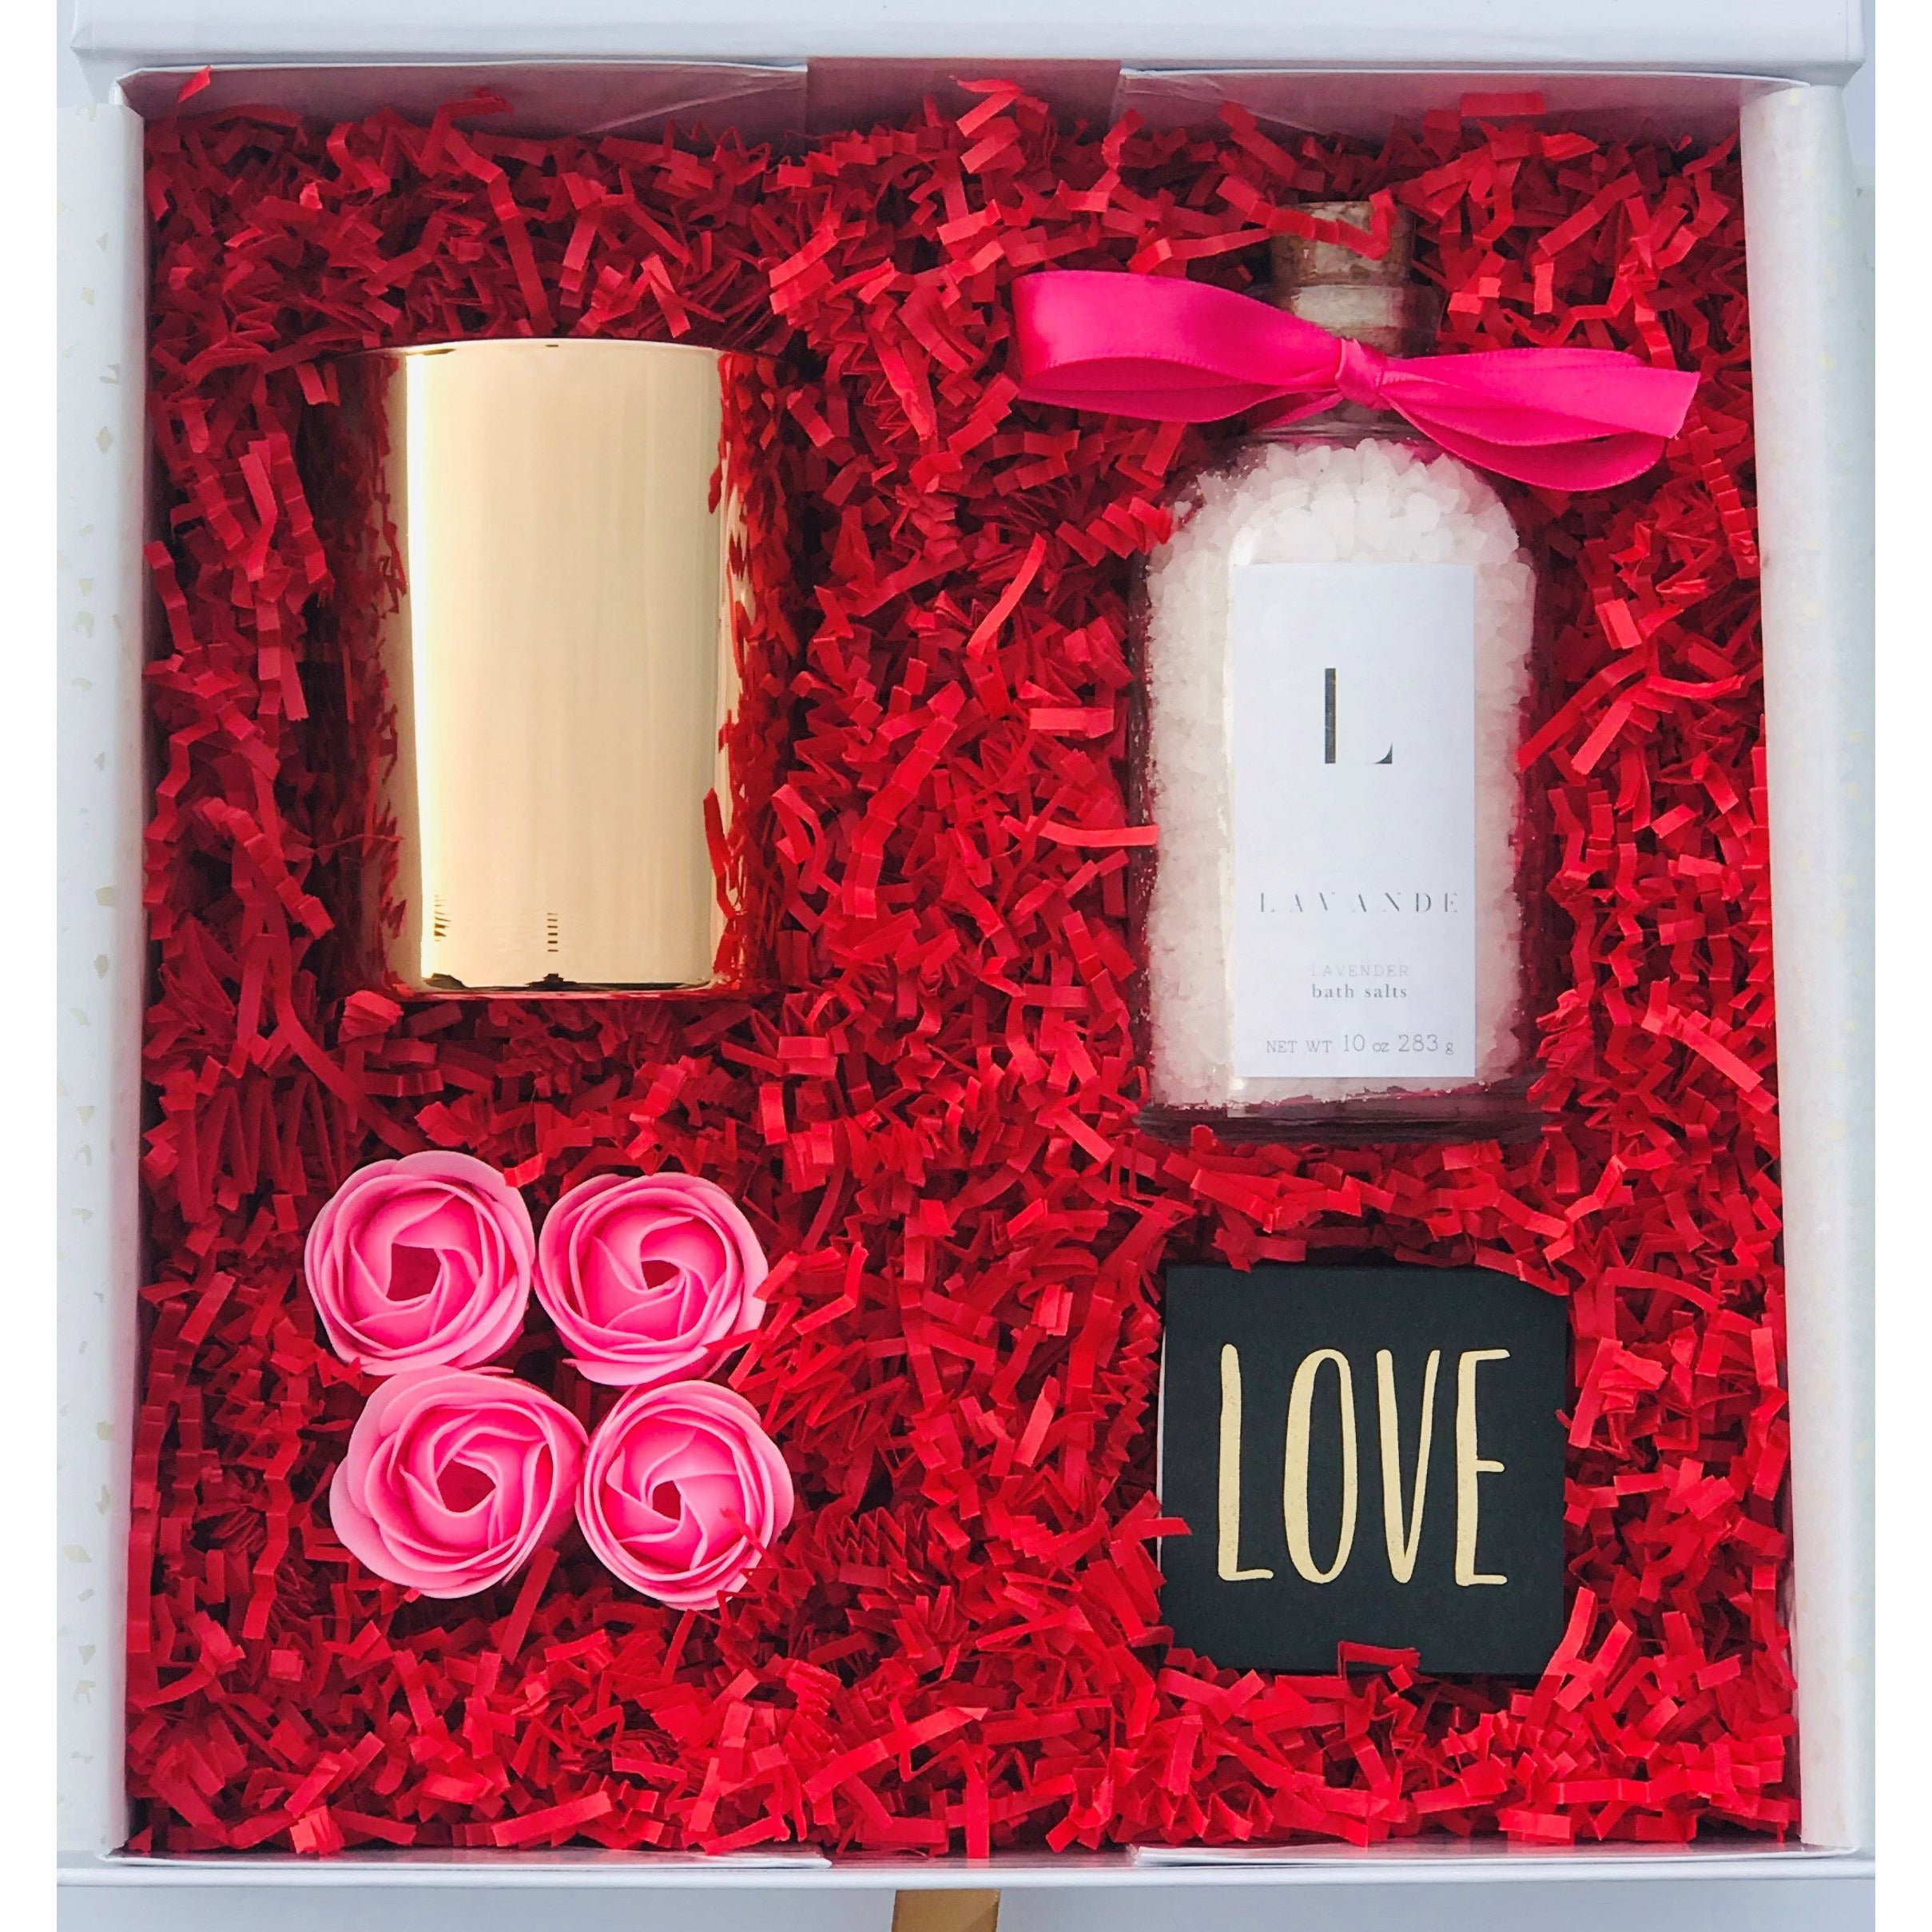 Passion by Soothing Box